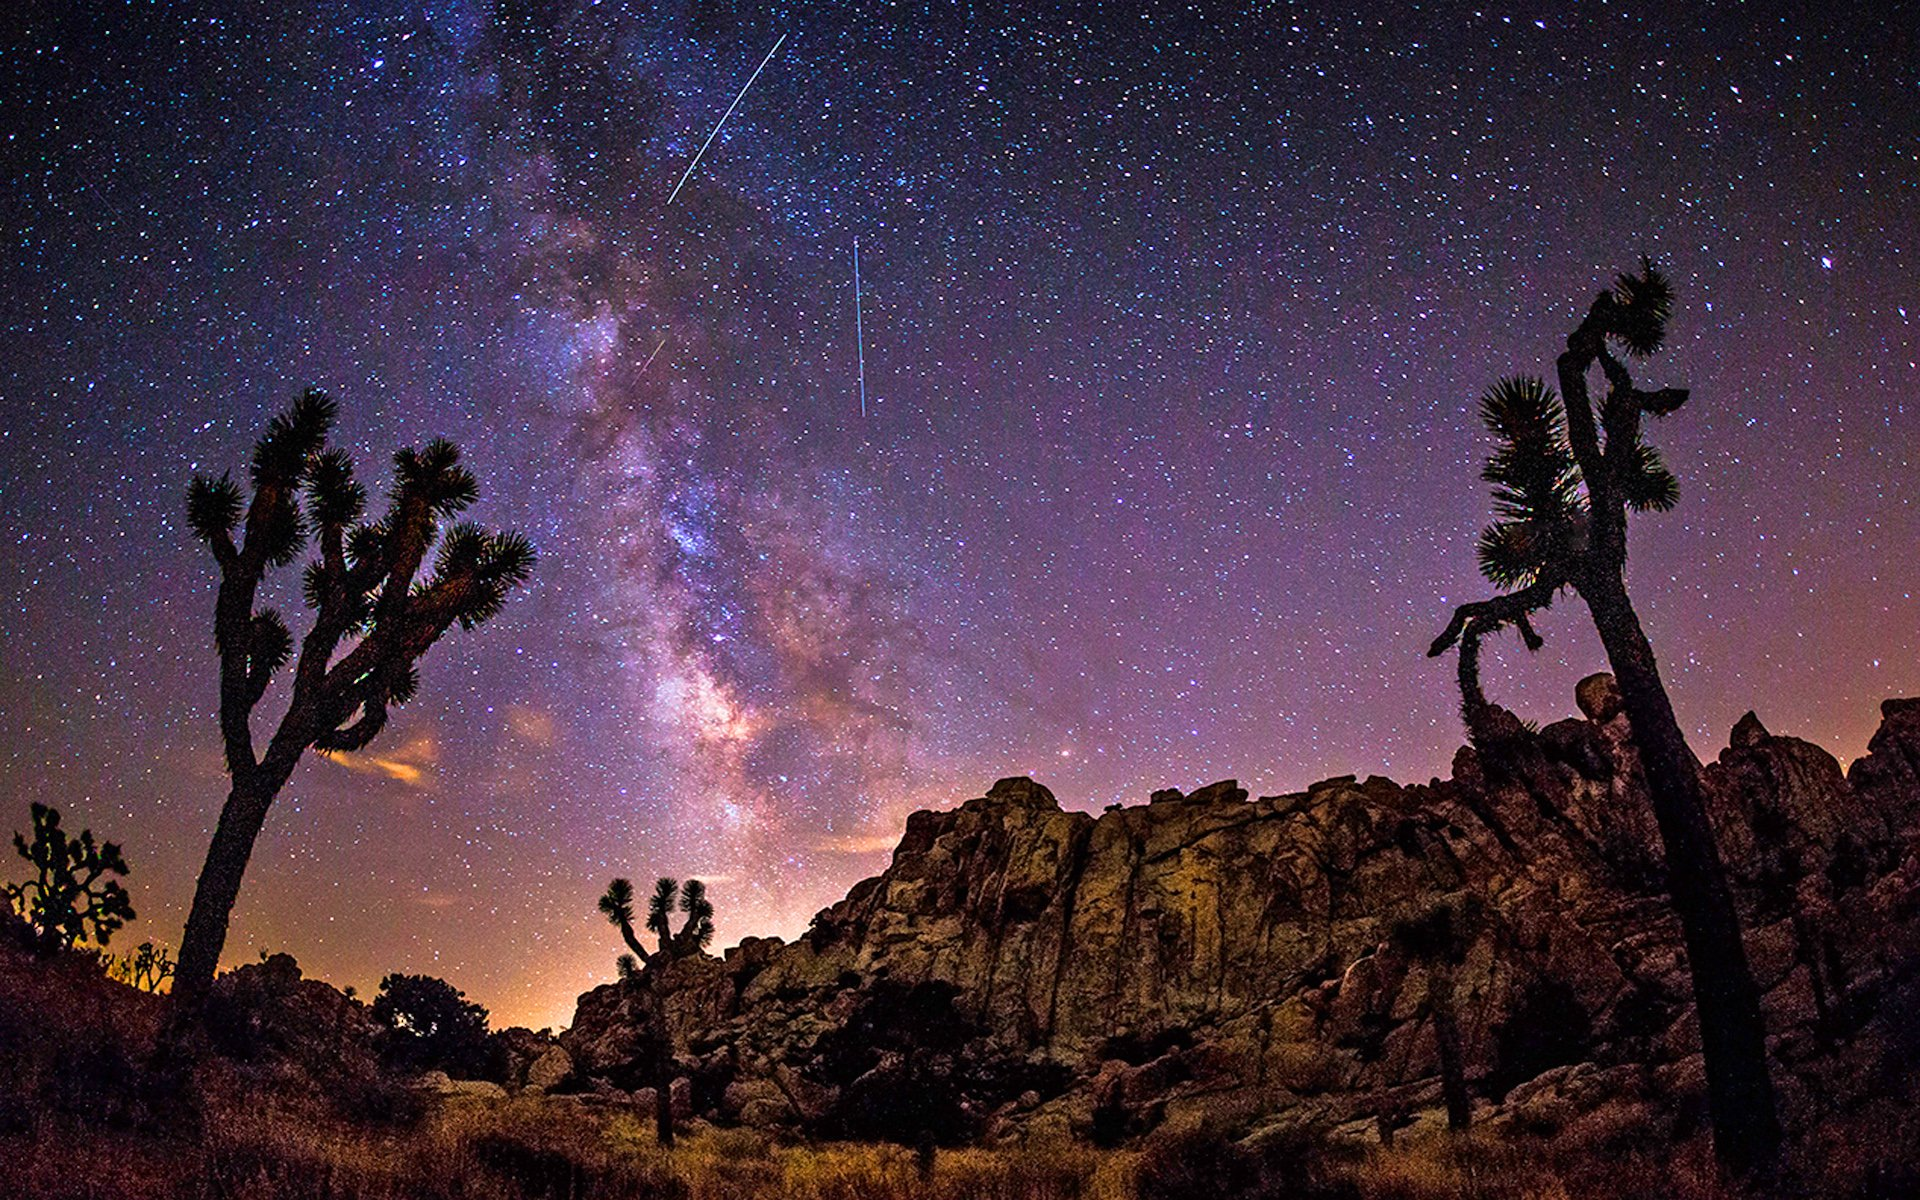 milky way sky over joshua trees in the desert full hd wallpaper and